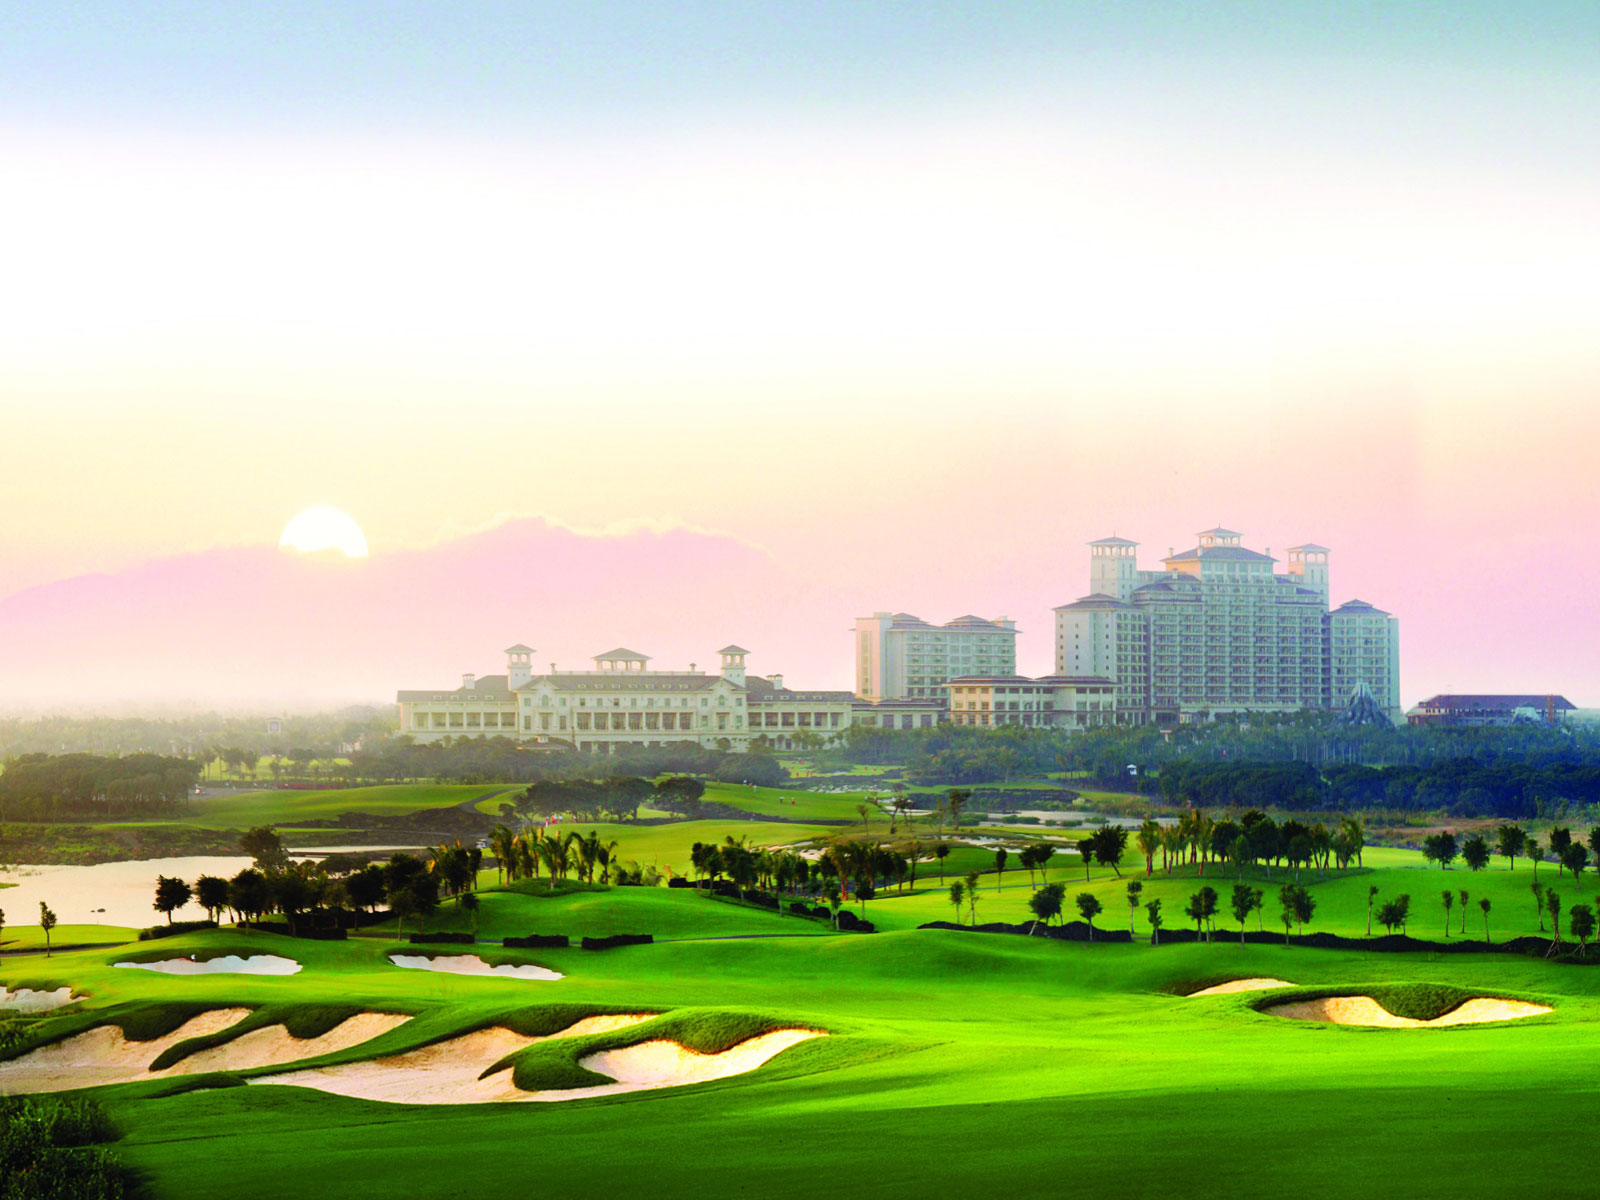 Mission Hills Golf in China